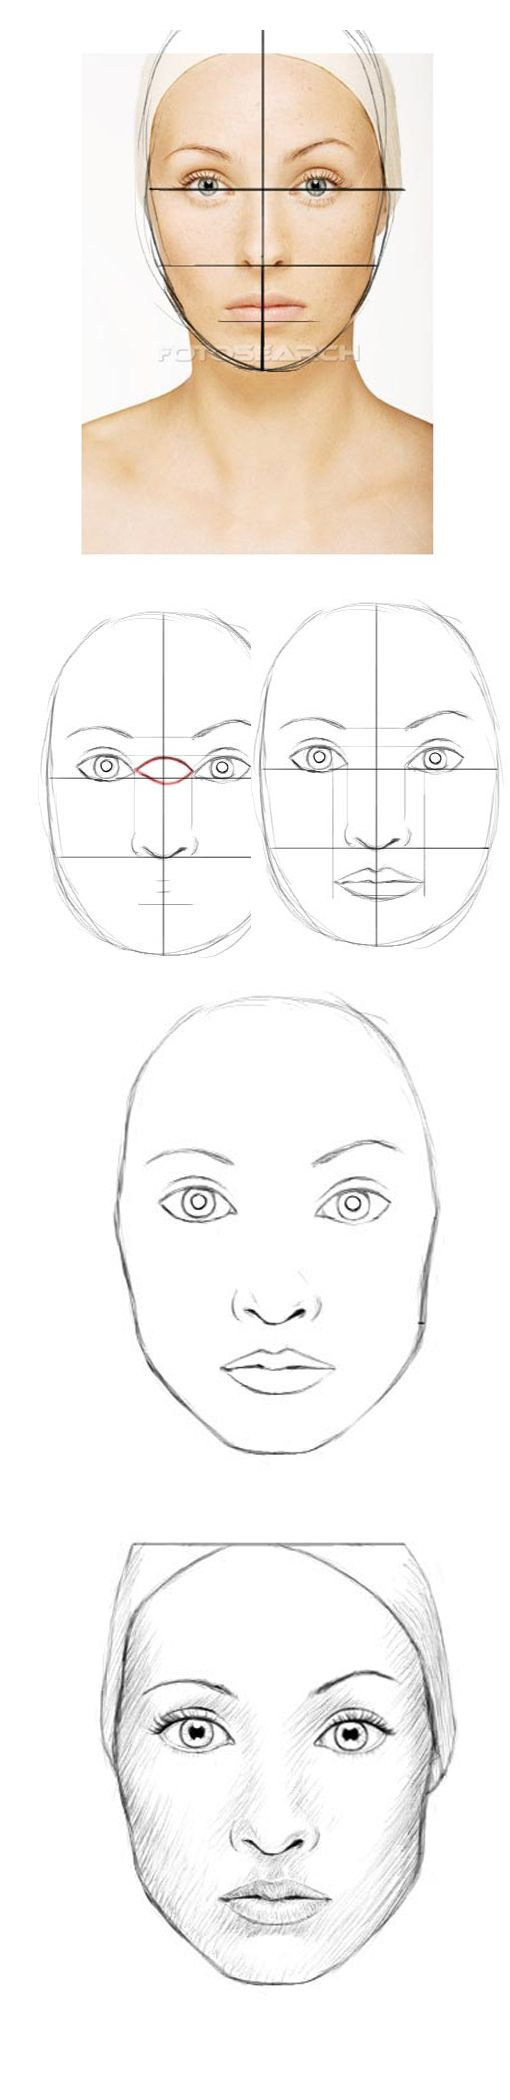 drawing the face